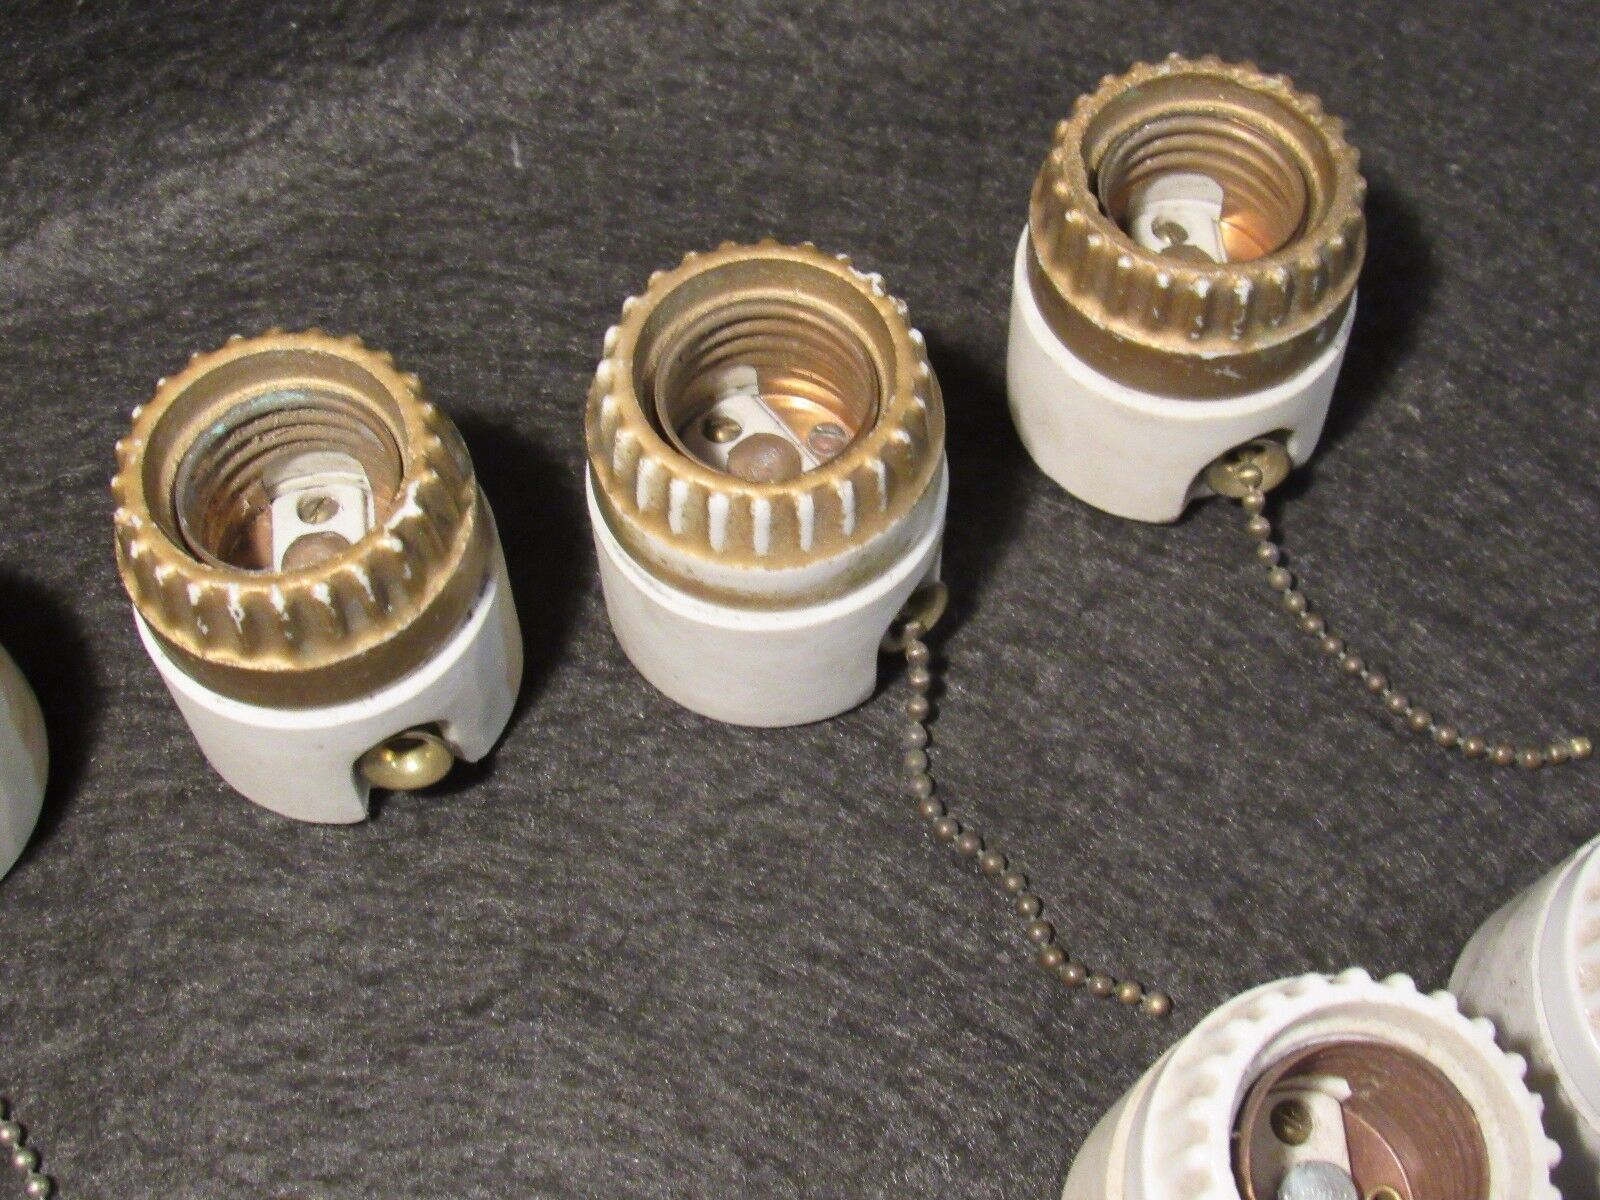 1 Antique Medium Base Two Piece Screw Top Switched Porcelain Light Socket Switch - $20.00